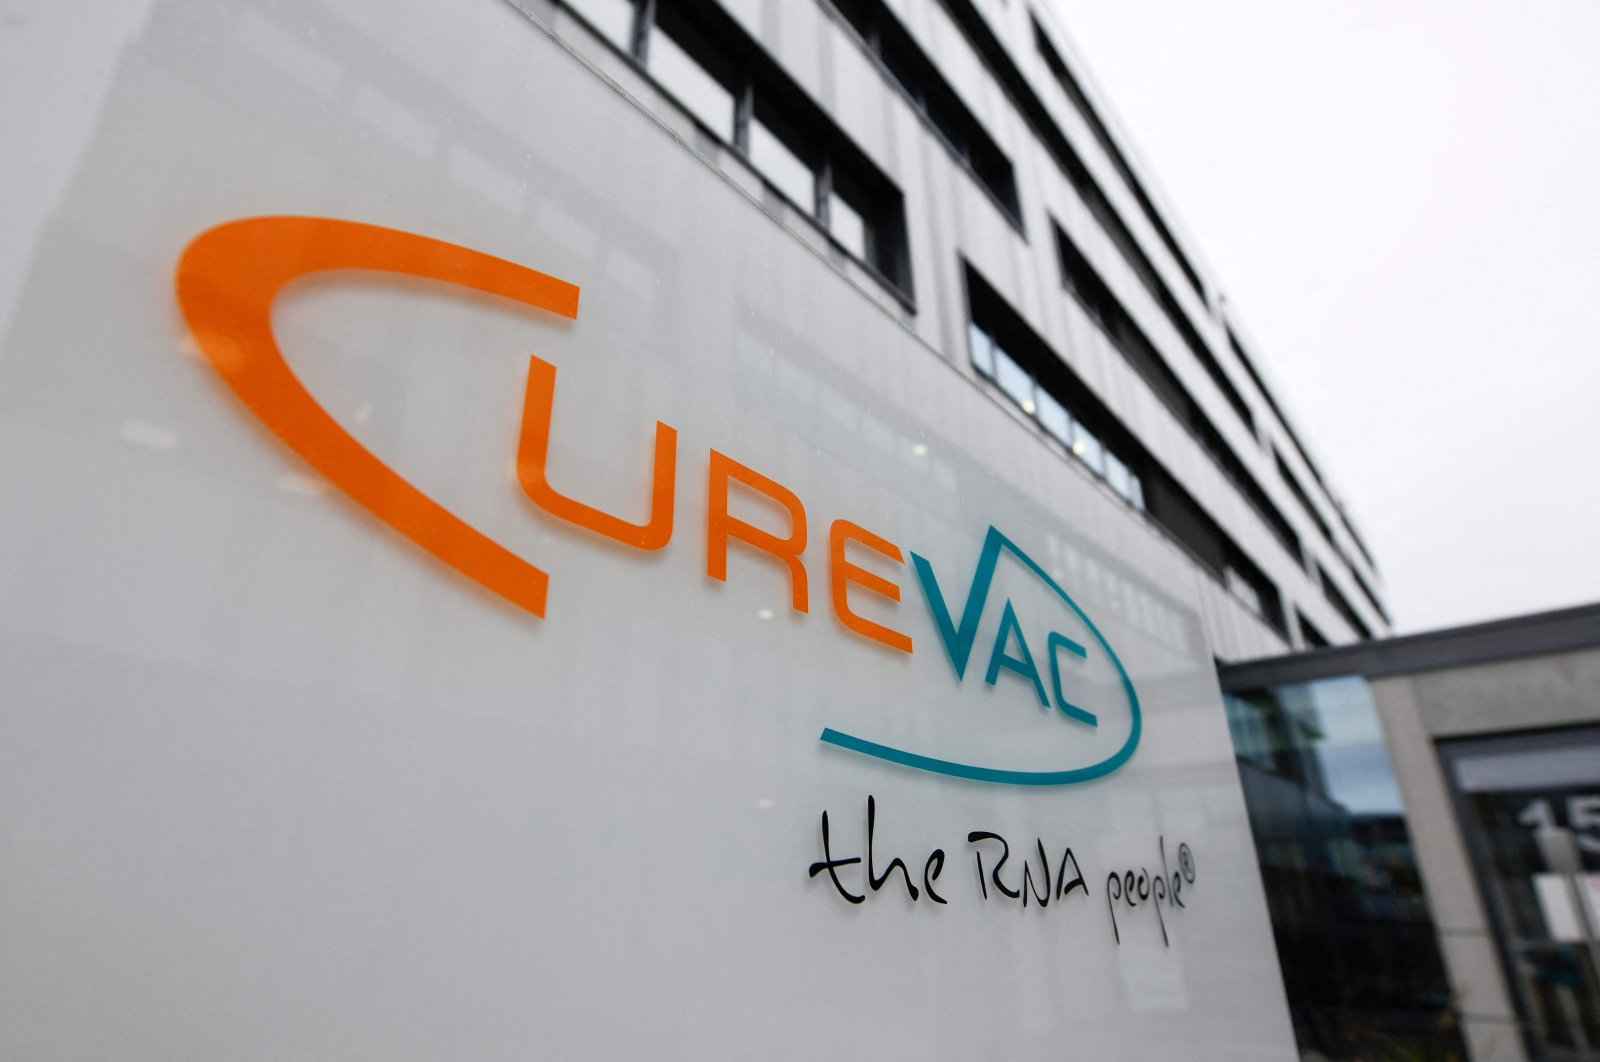 The logo of the biopharmaceutical company CureVac is displayed in front of the company's headquarters in Tuebingen, southern Germany, Dec. 15, 2020.  (AFP File Photo)